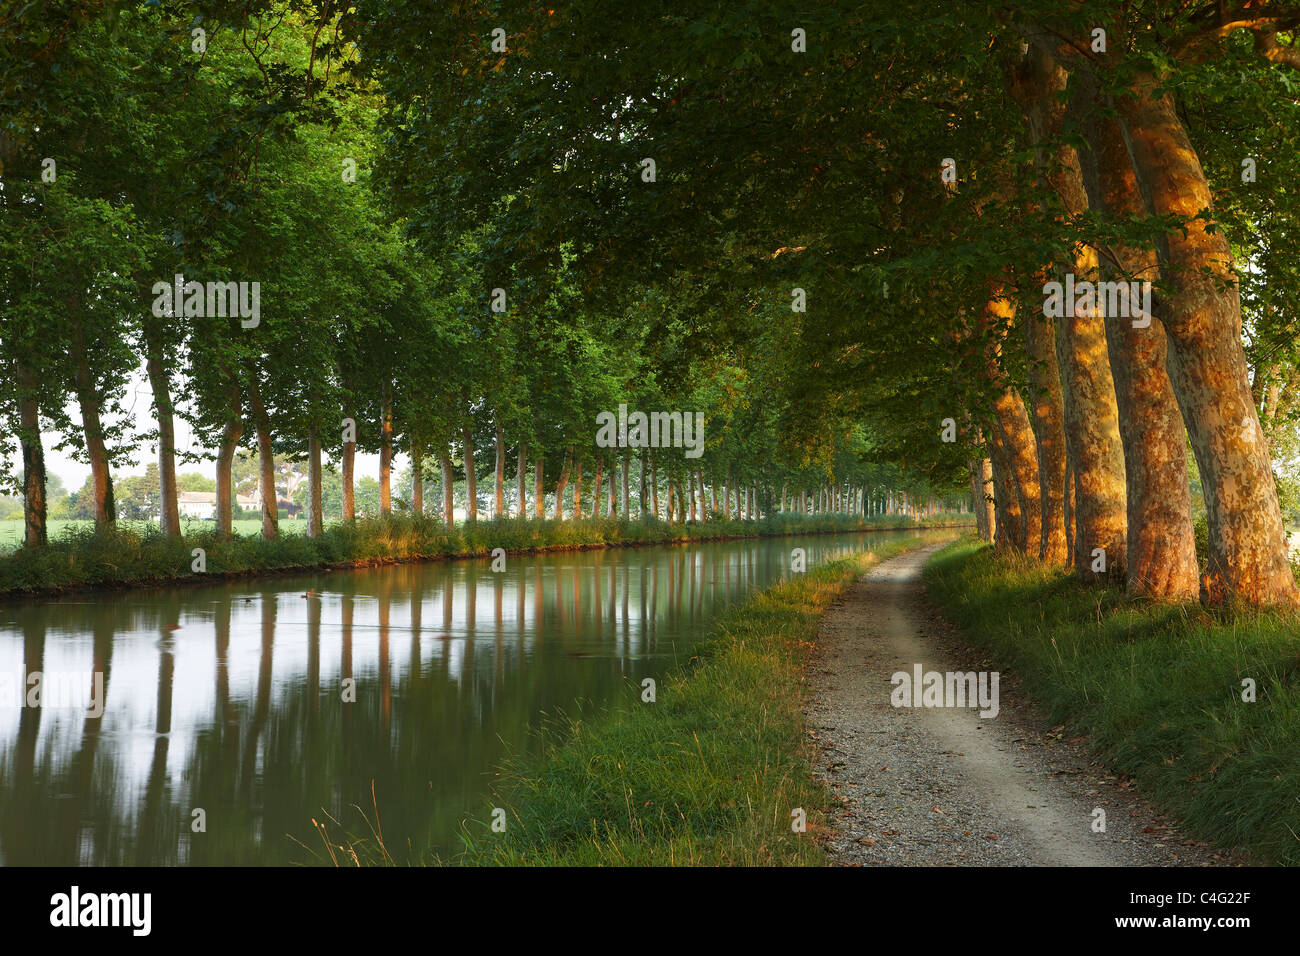 the Canal du Midi at dawn near Castelnaudary, Aude, Languedoc-Roussillon, France - Stock Image